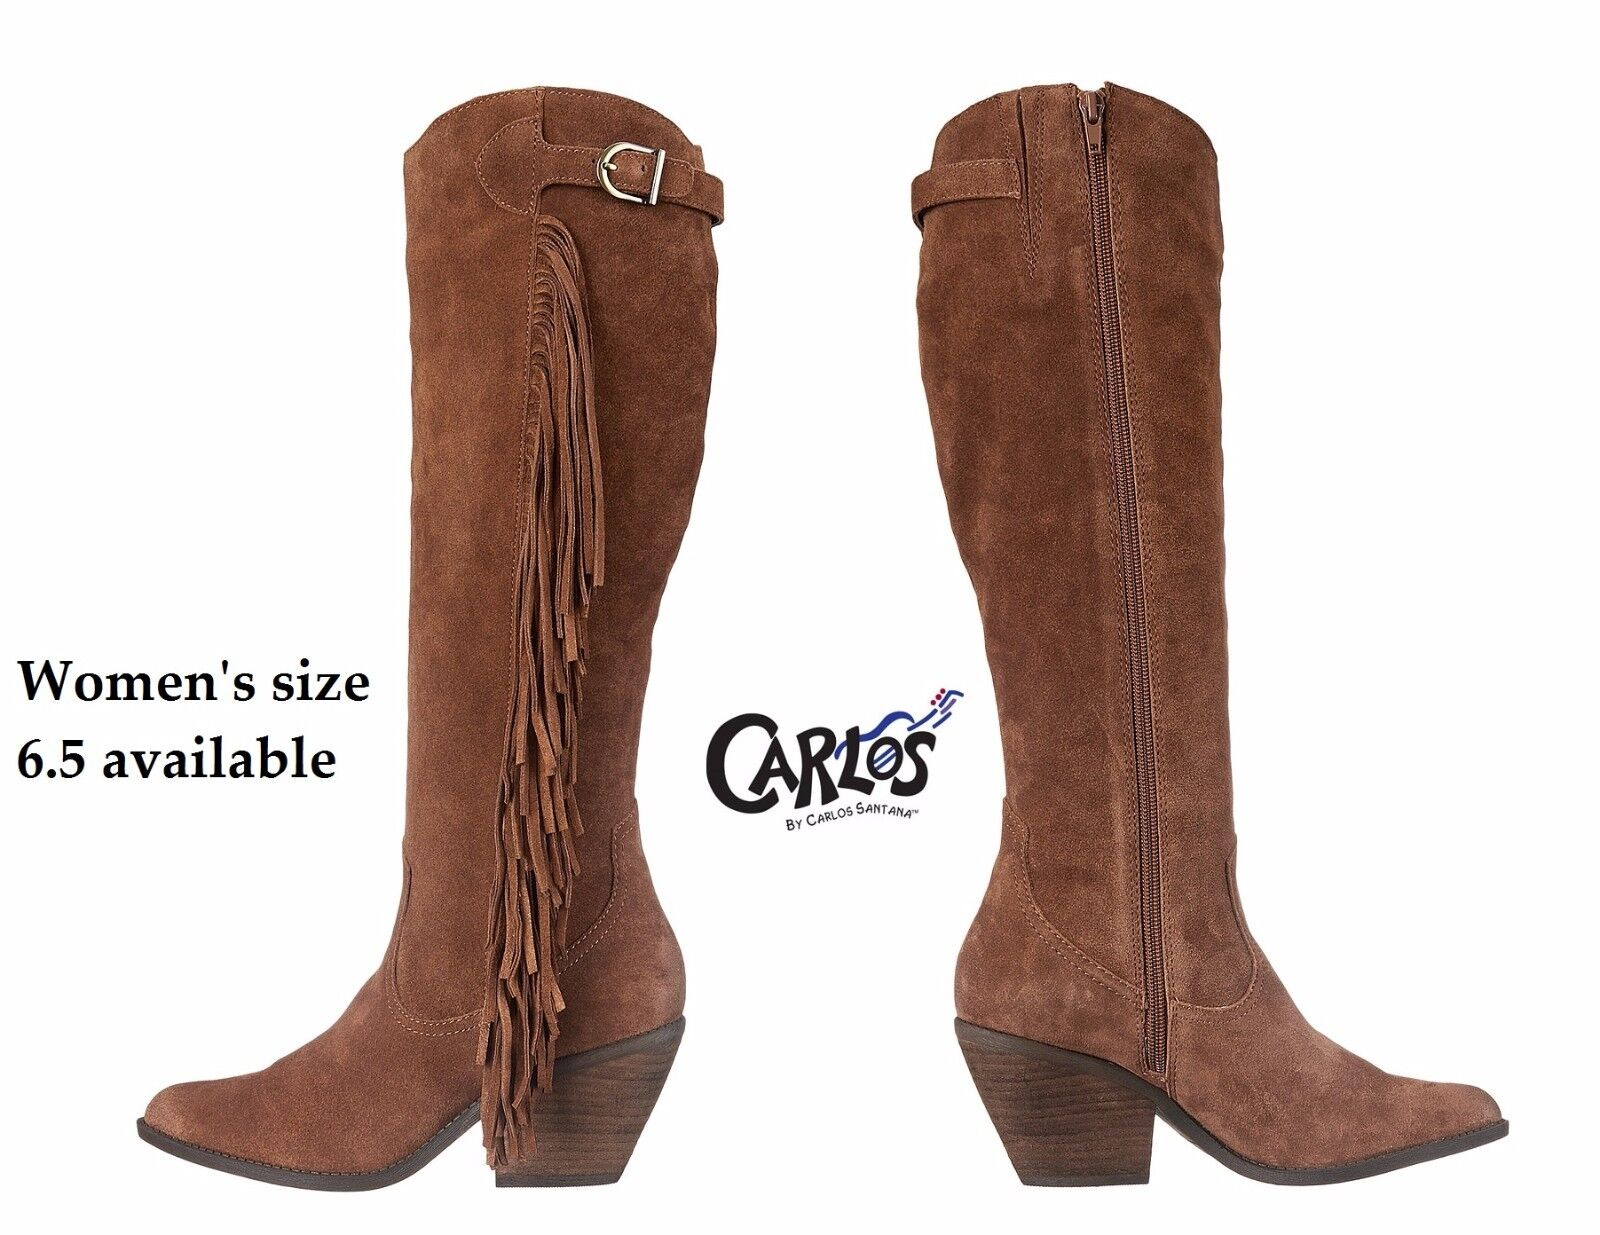 Womens size 6.5m CARLOS Santana Lever (Mustang) suede fringe boots in Brown, NIB